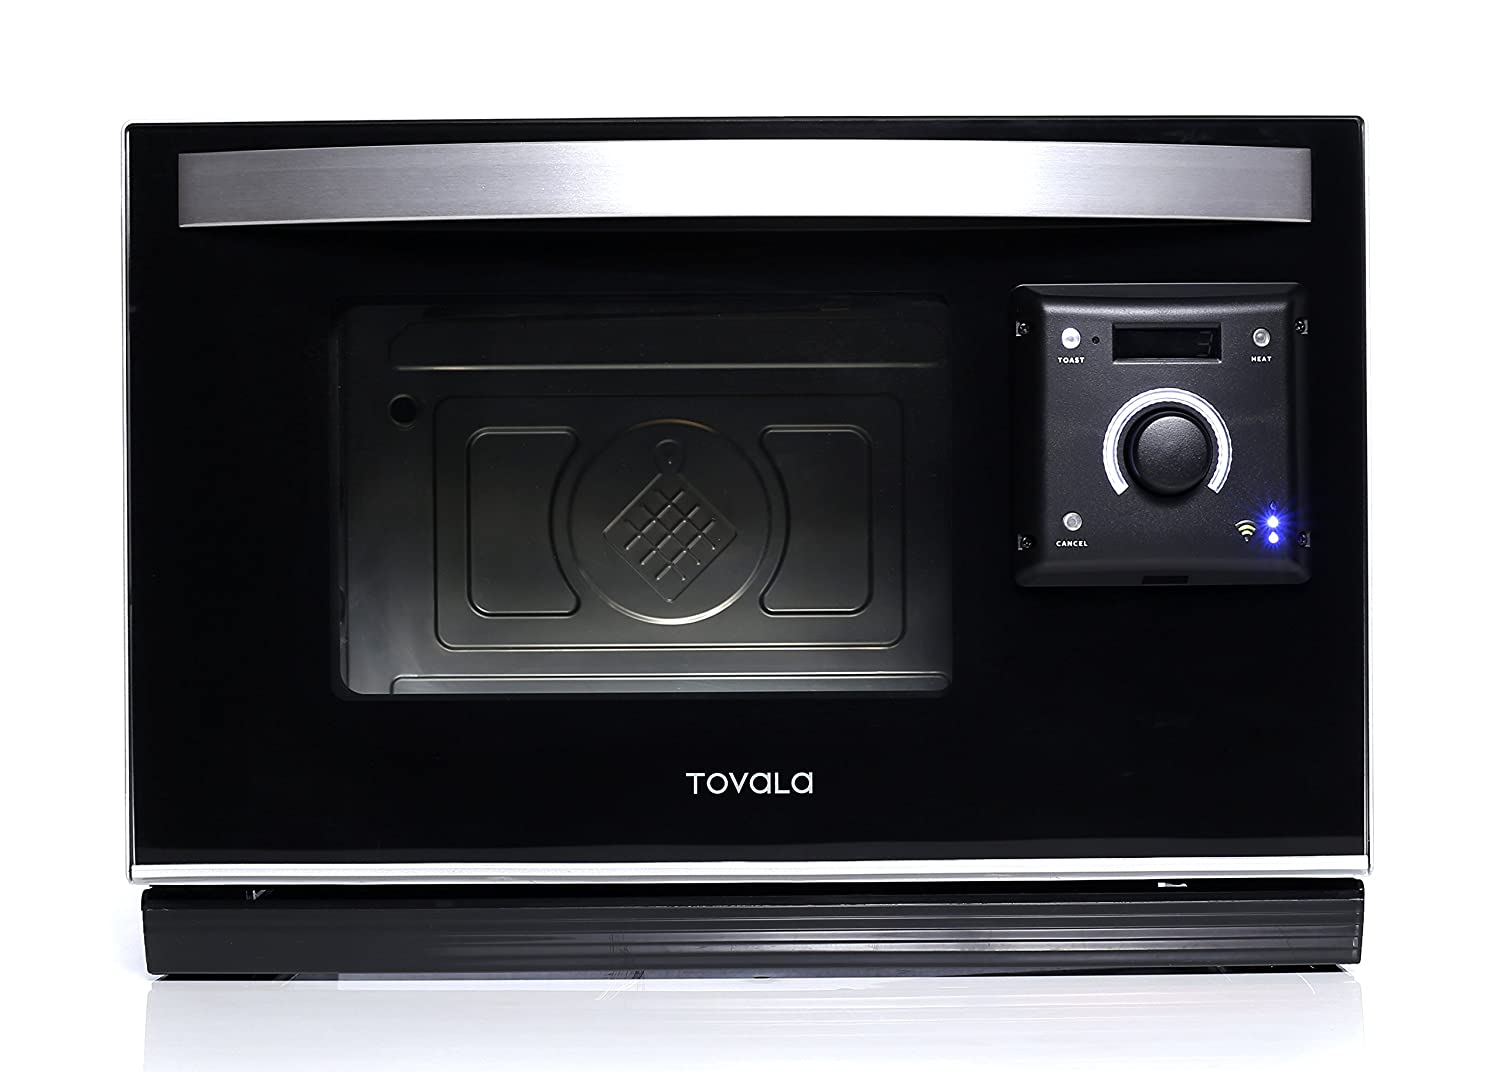 Tovala Gen 1 Smart Steam Oven with Automatic Multi-Mode Cooking